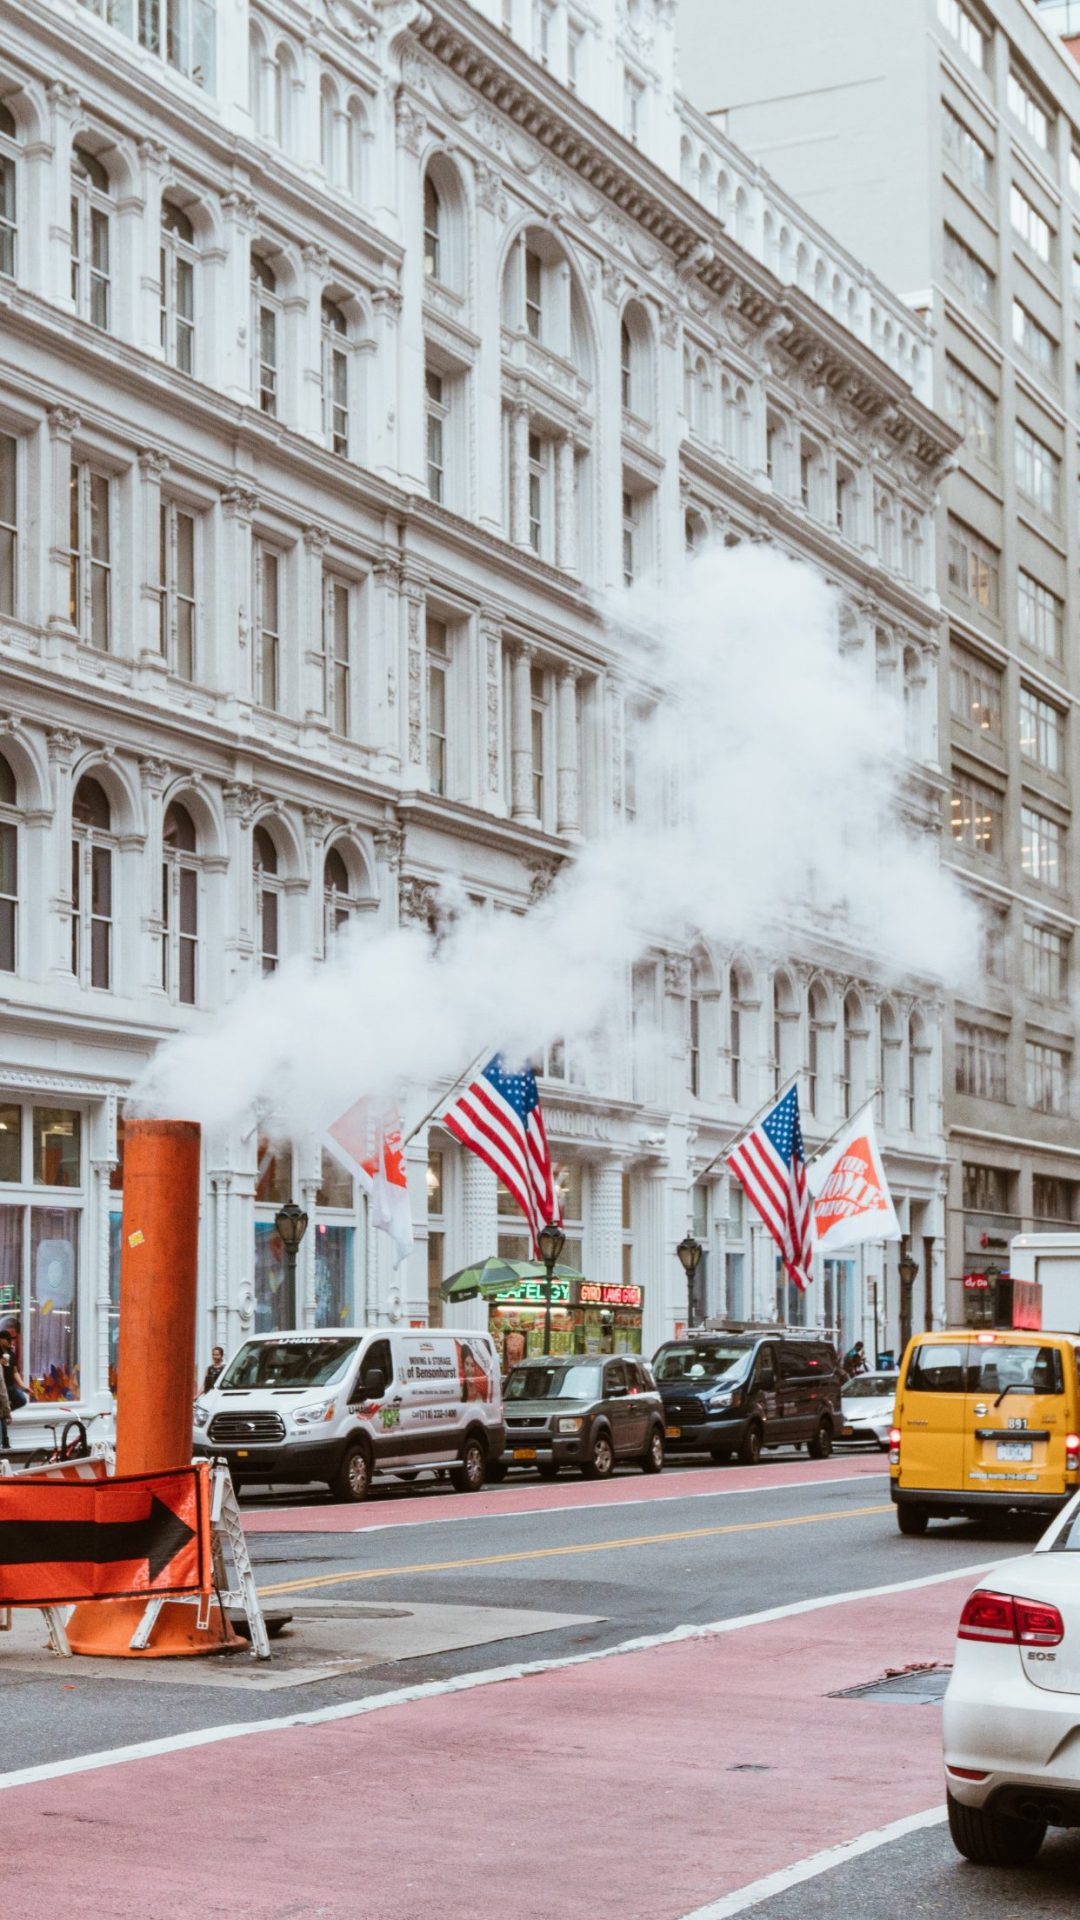 Beautiful New York City architecture with American flags